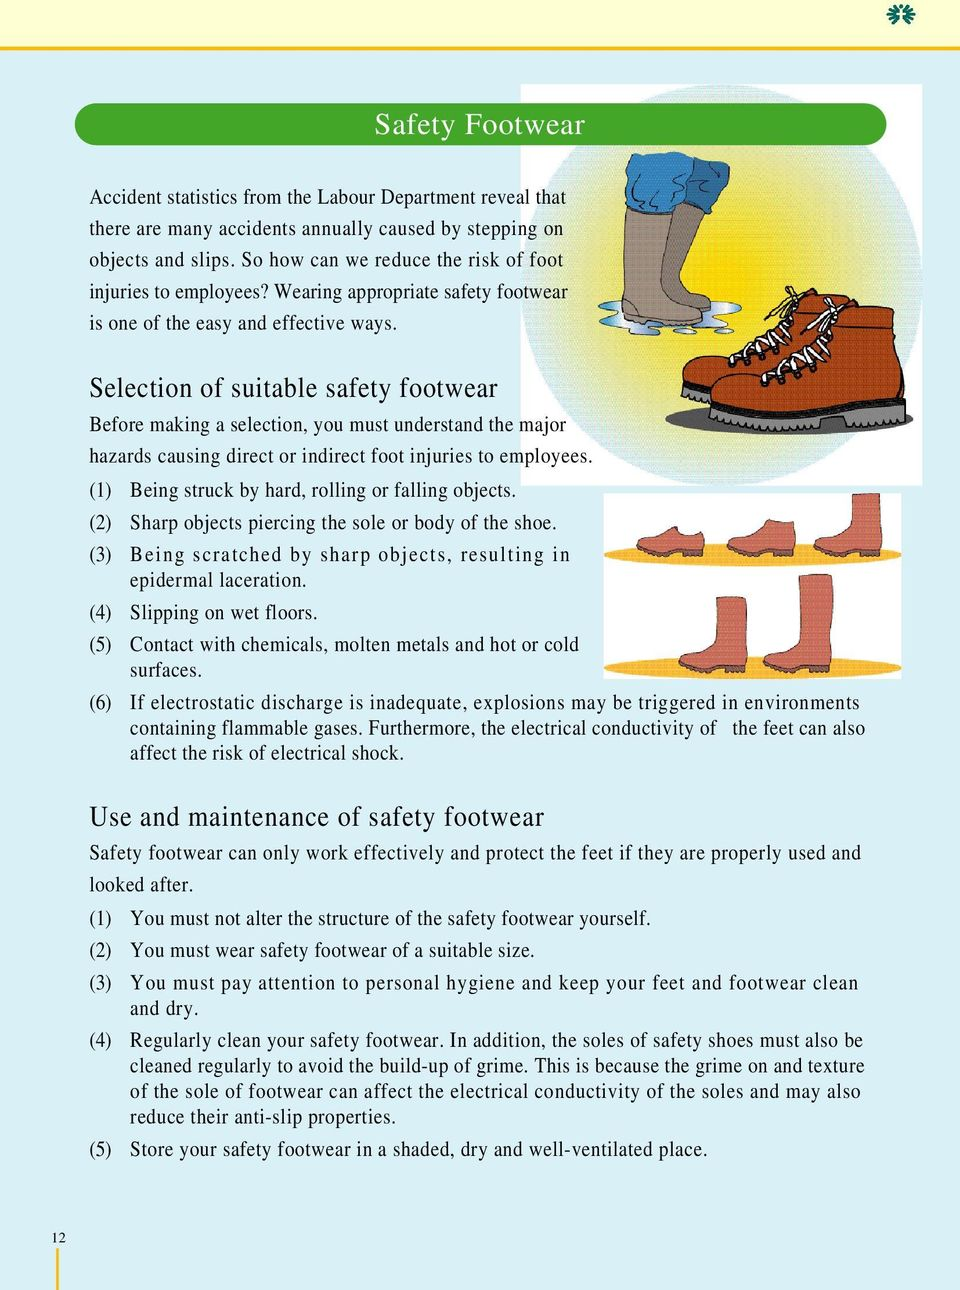 Selection of suitable safety footwear Before making a selection, you must understand the major hazards causing direct or indirect foot injuries to employees.